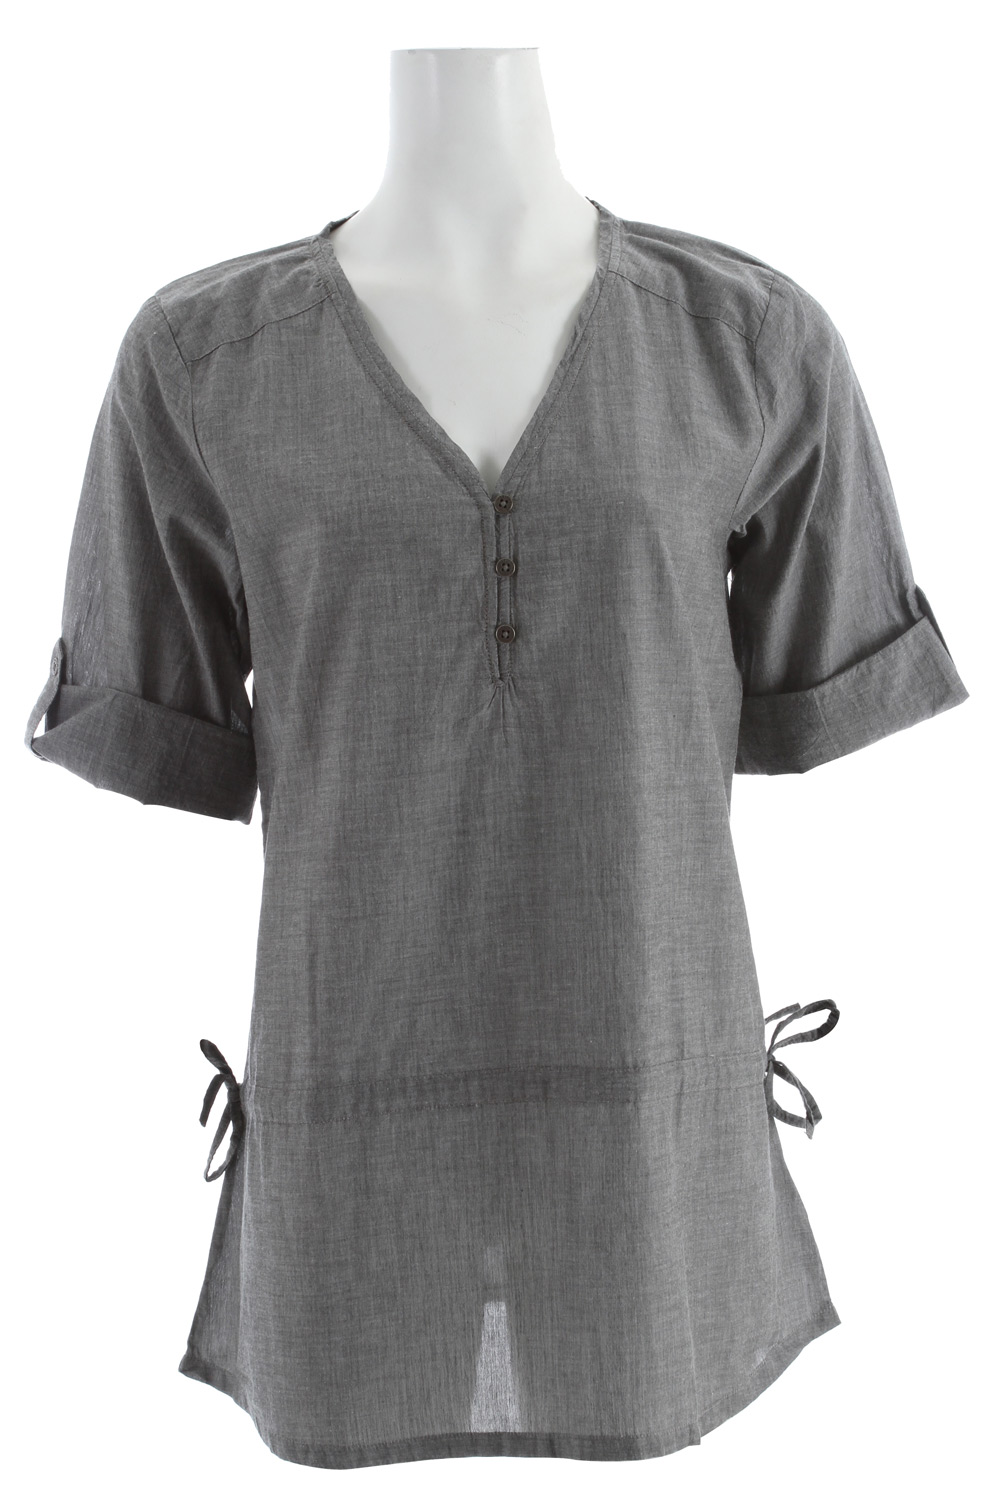 Toad & Co Rosie Overshirt Charcoal - $40.95